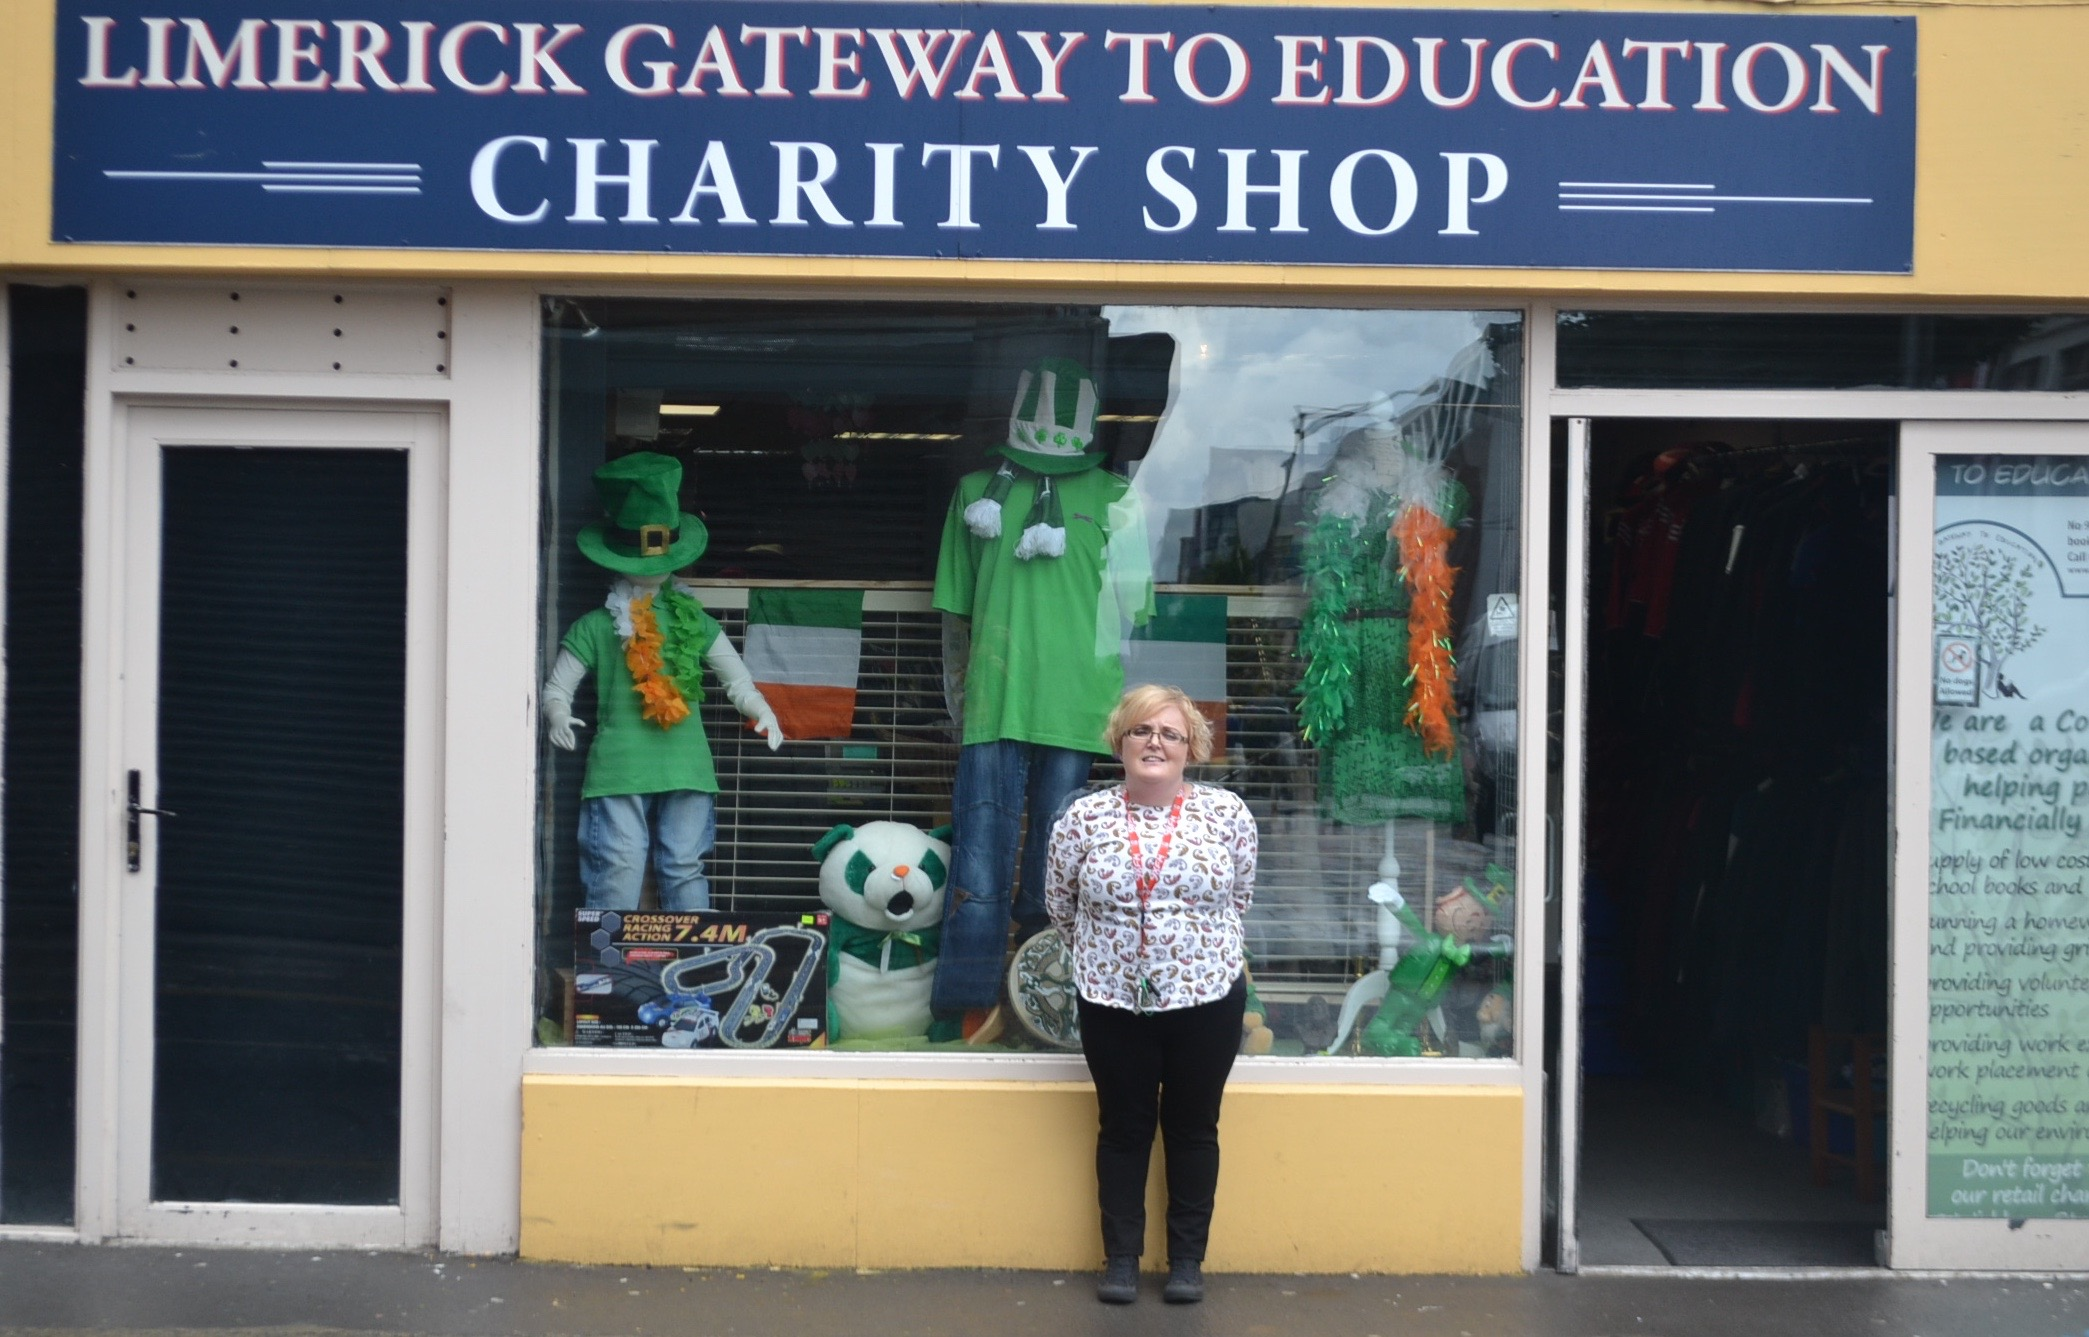 Limerick's Gateway to Education Asking for School Books BNest Social Incubator